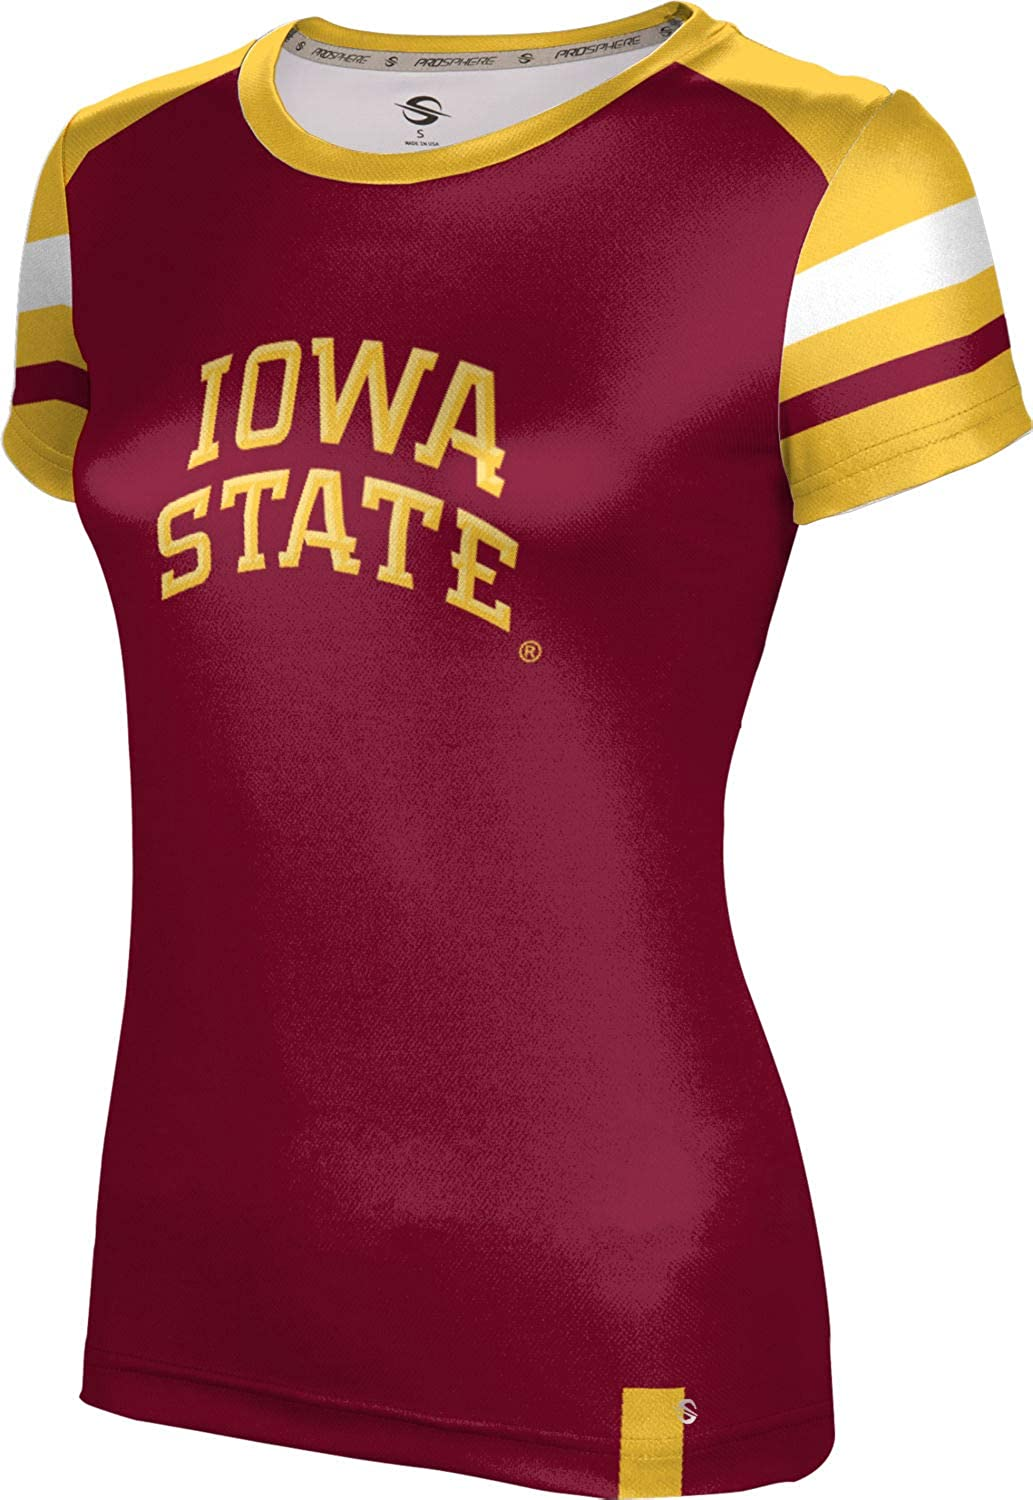 ProSphere Iowa State University Complete Free Shipping Women's New sales Old T-Shirt Performance